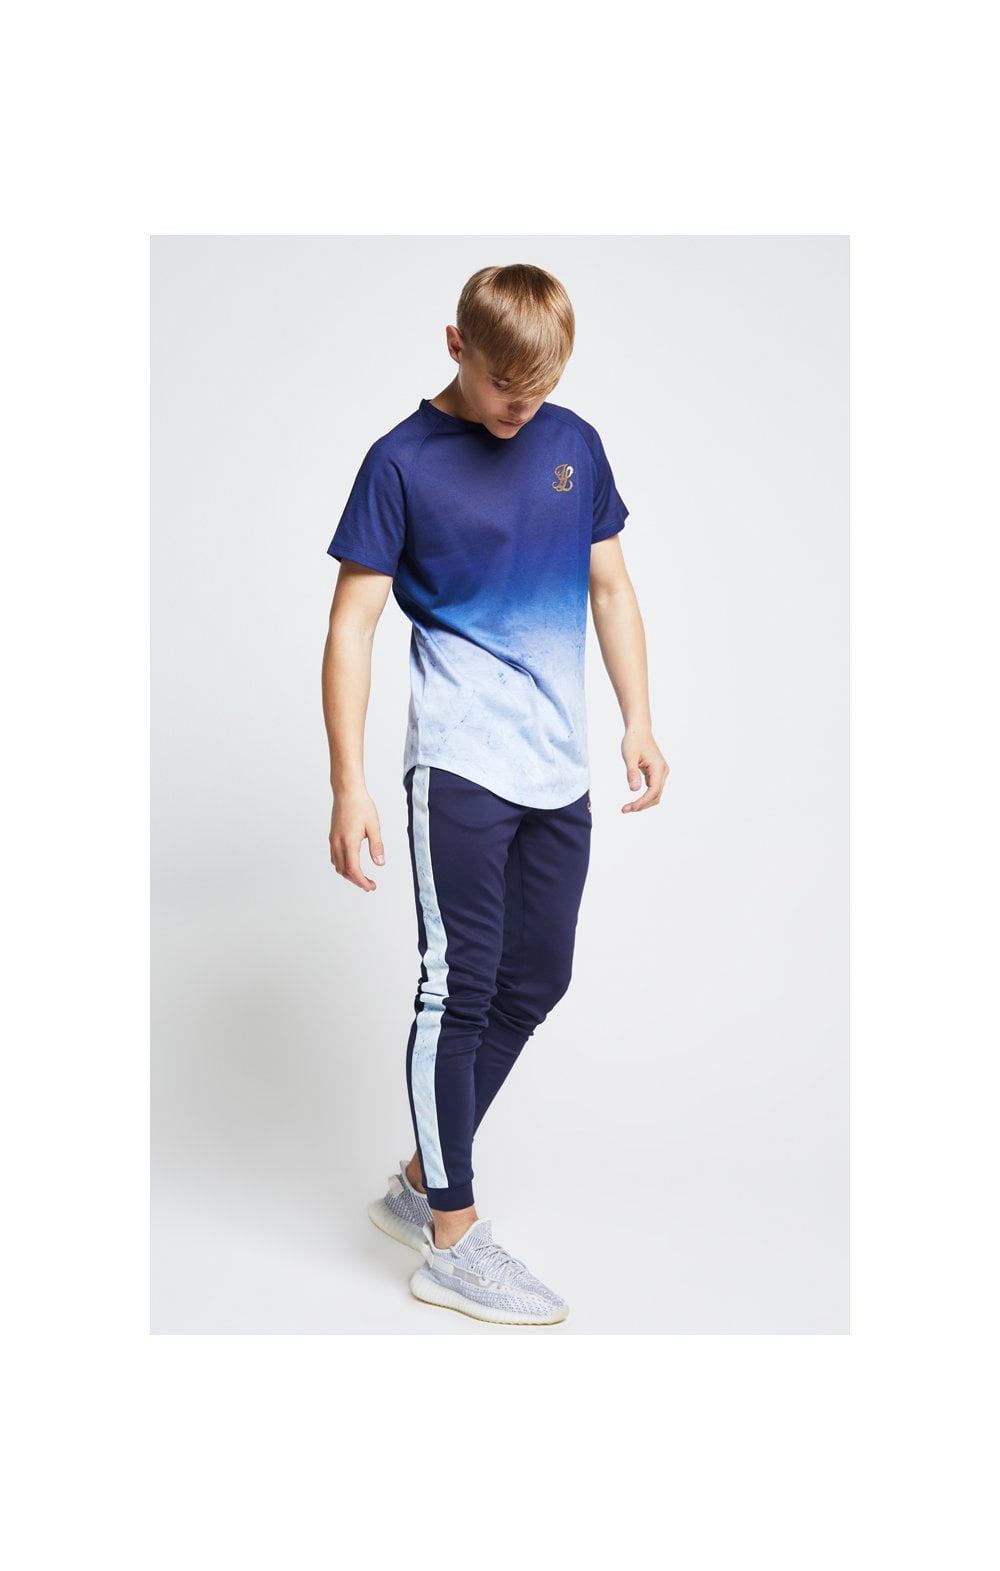 Illusive London Marble Fade Tee – Navy & Marble (2)